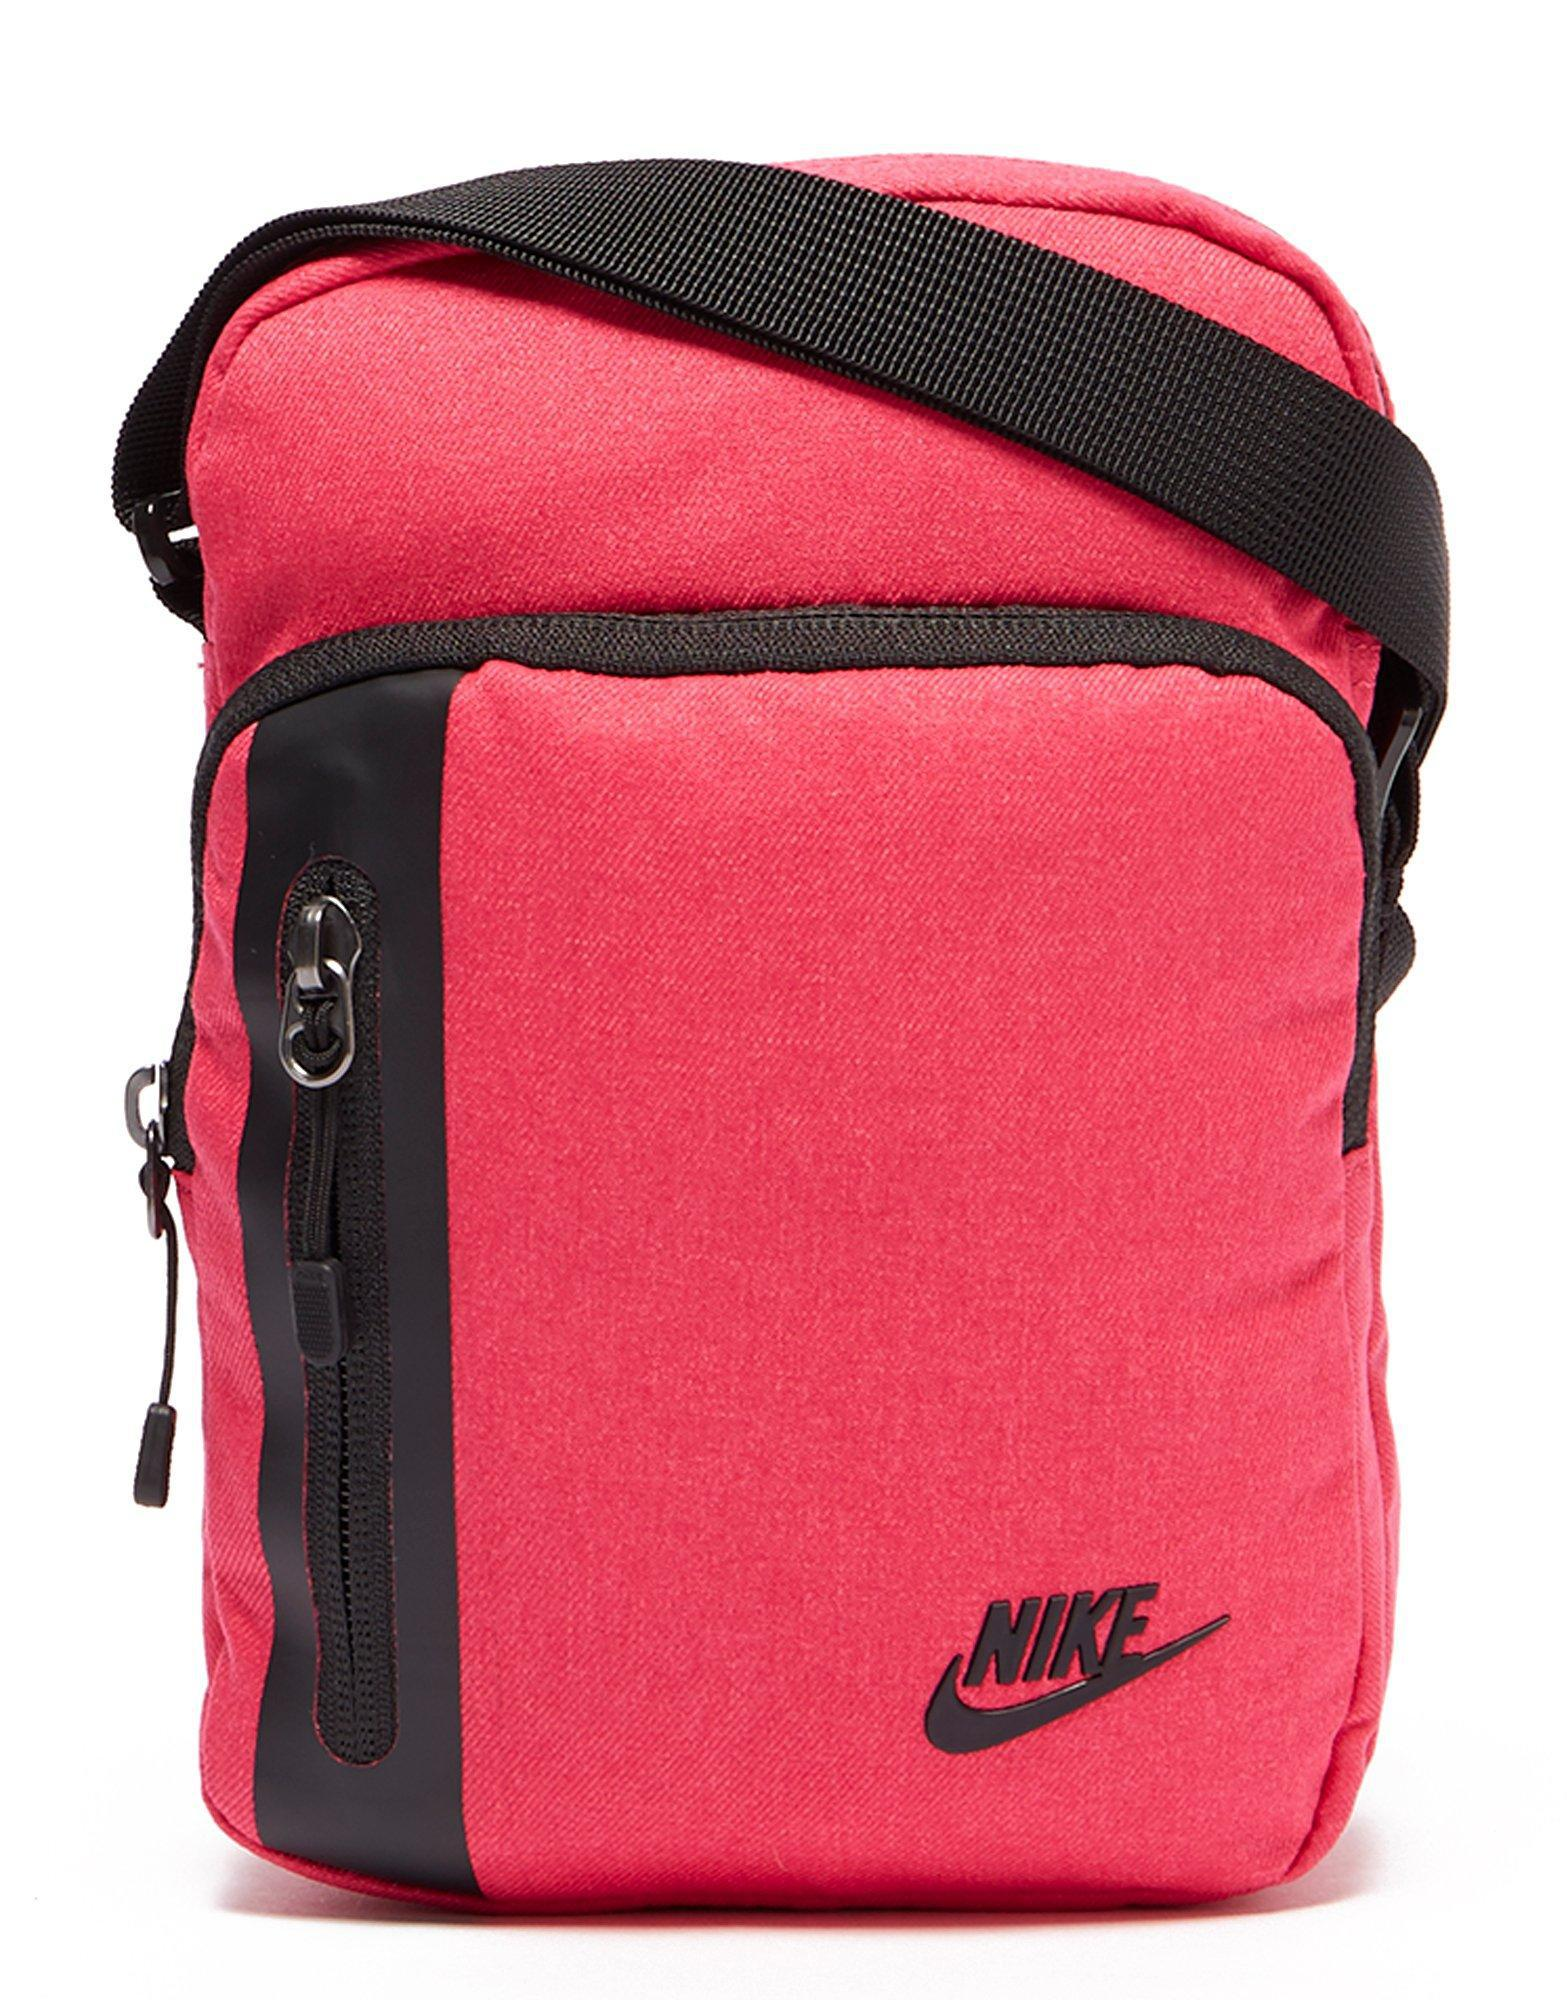 Lyst - Nike Core Small Items 3.0 Pouch Bag in Pink for Men 14e56e6418